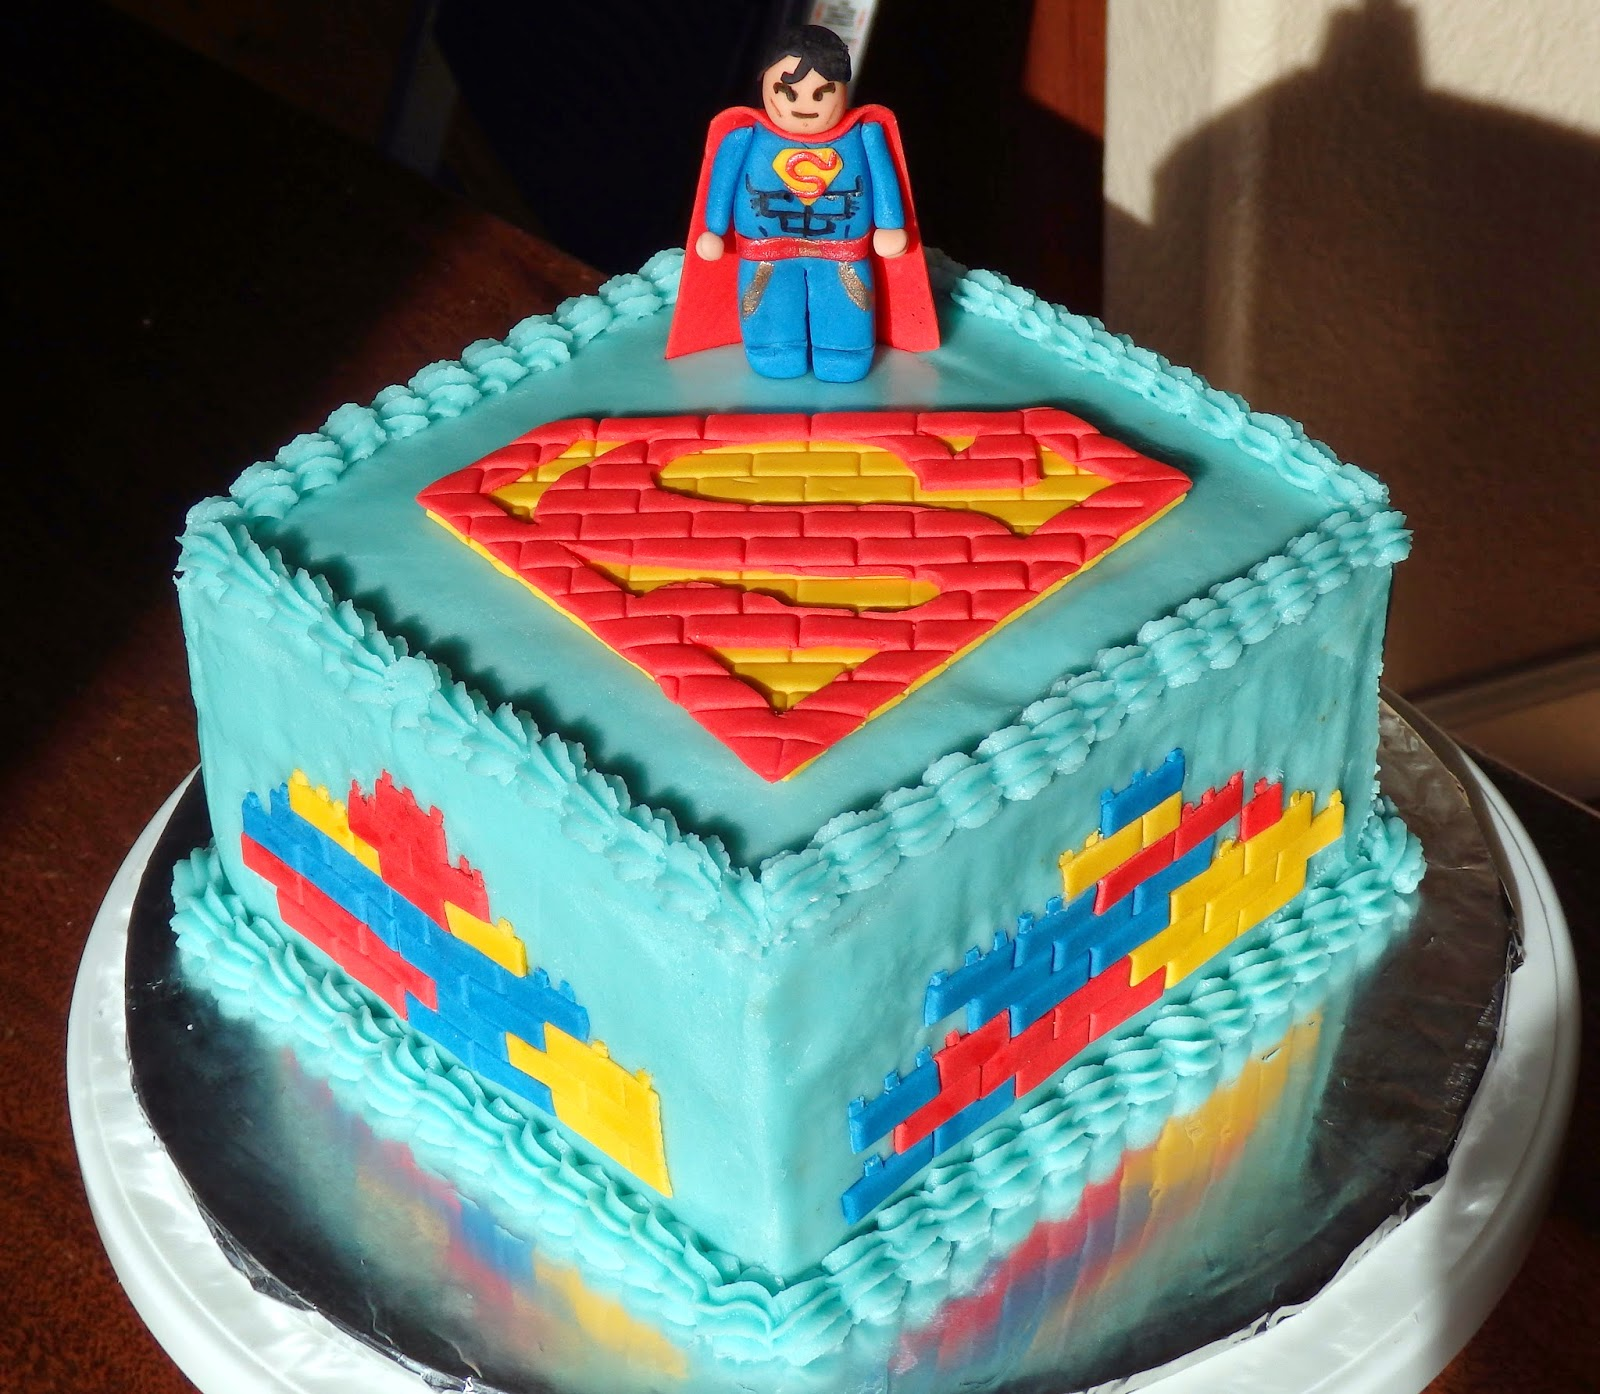 Lego Themed Cake Design : Cakes By D: Superman Lego Birthday Cake